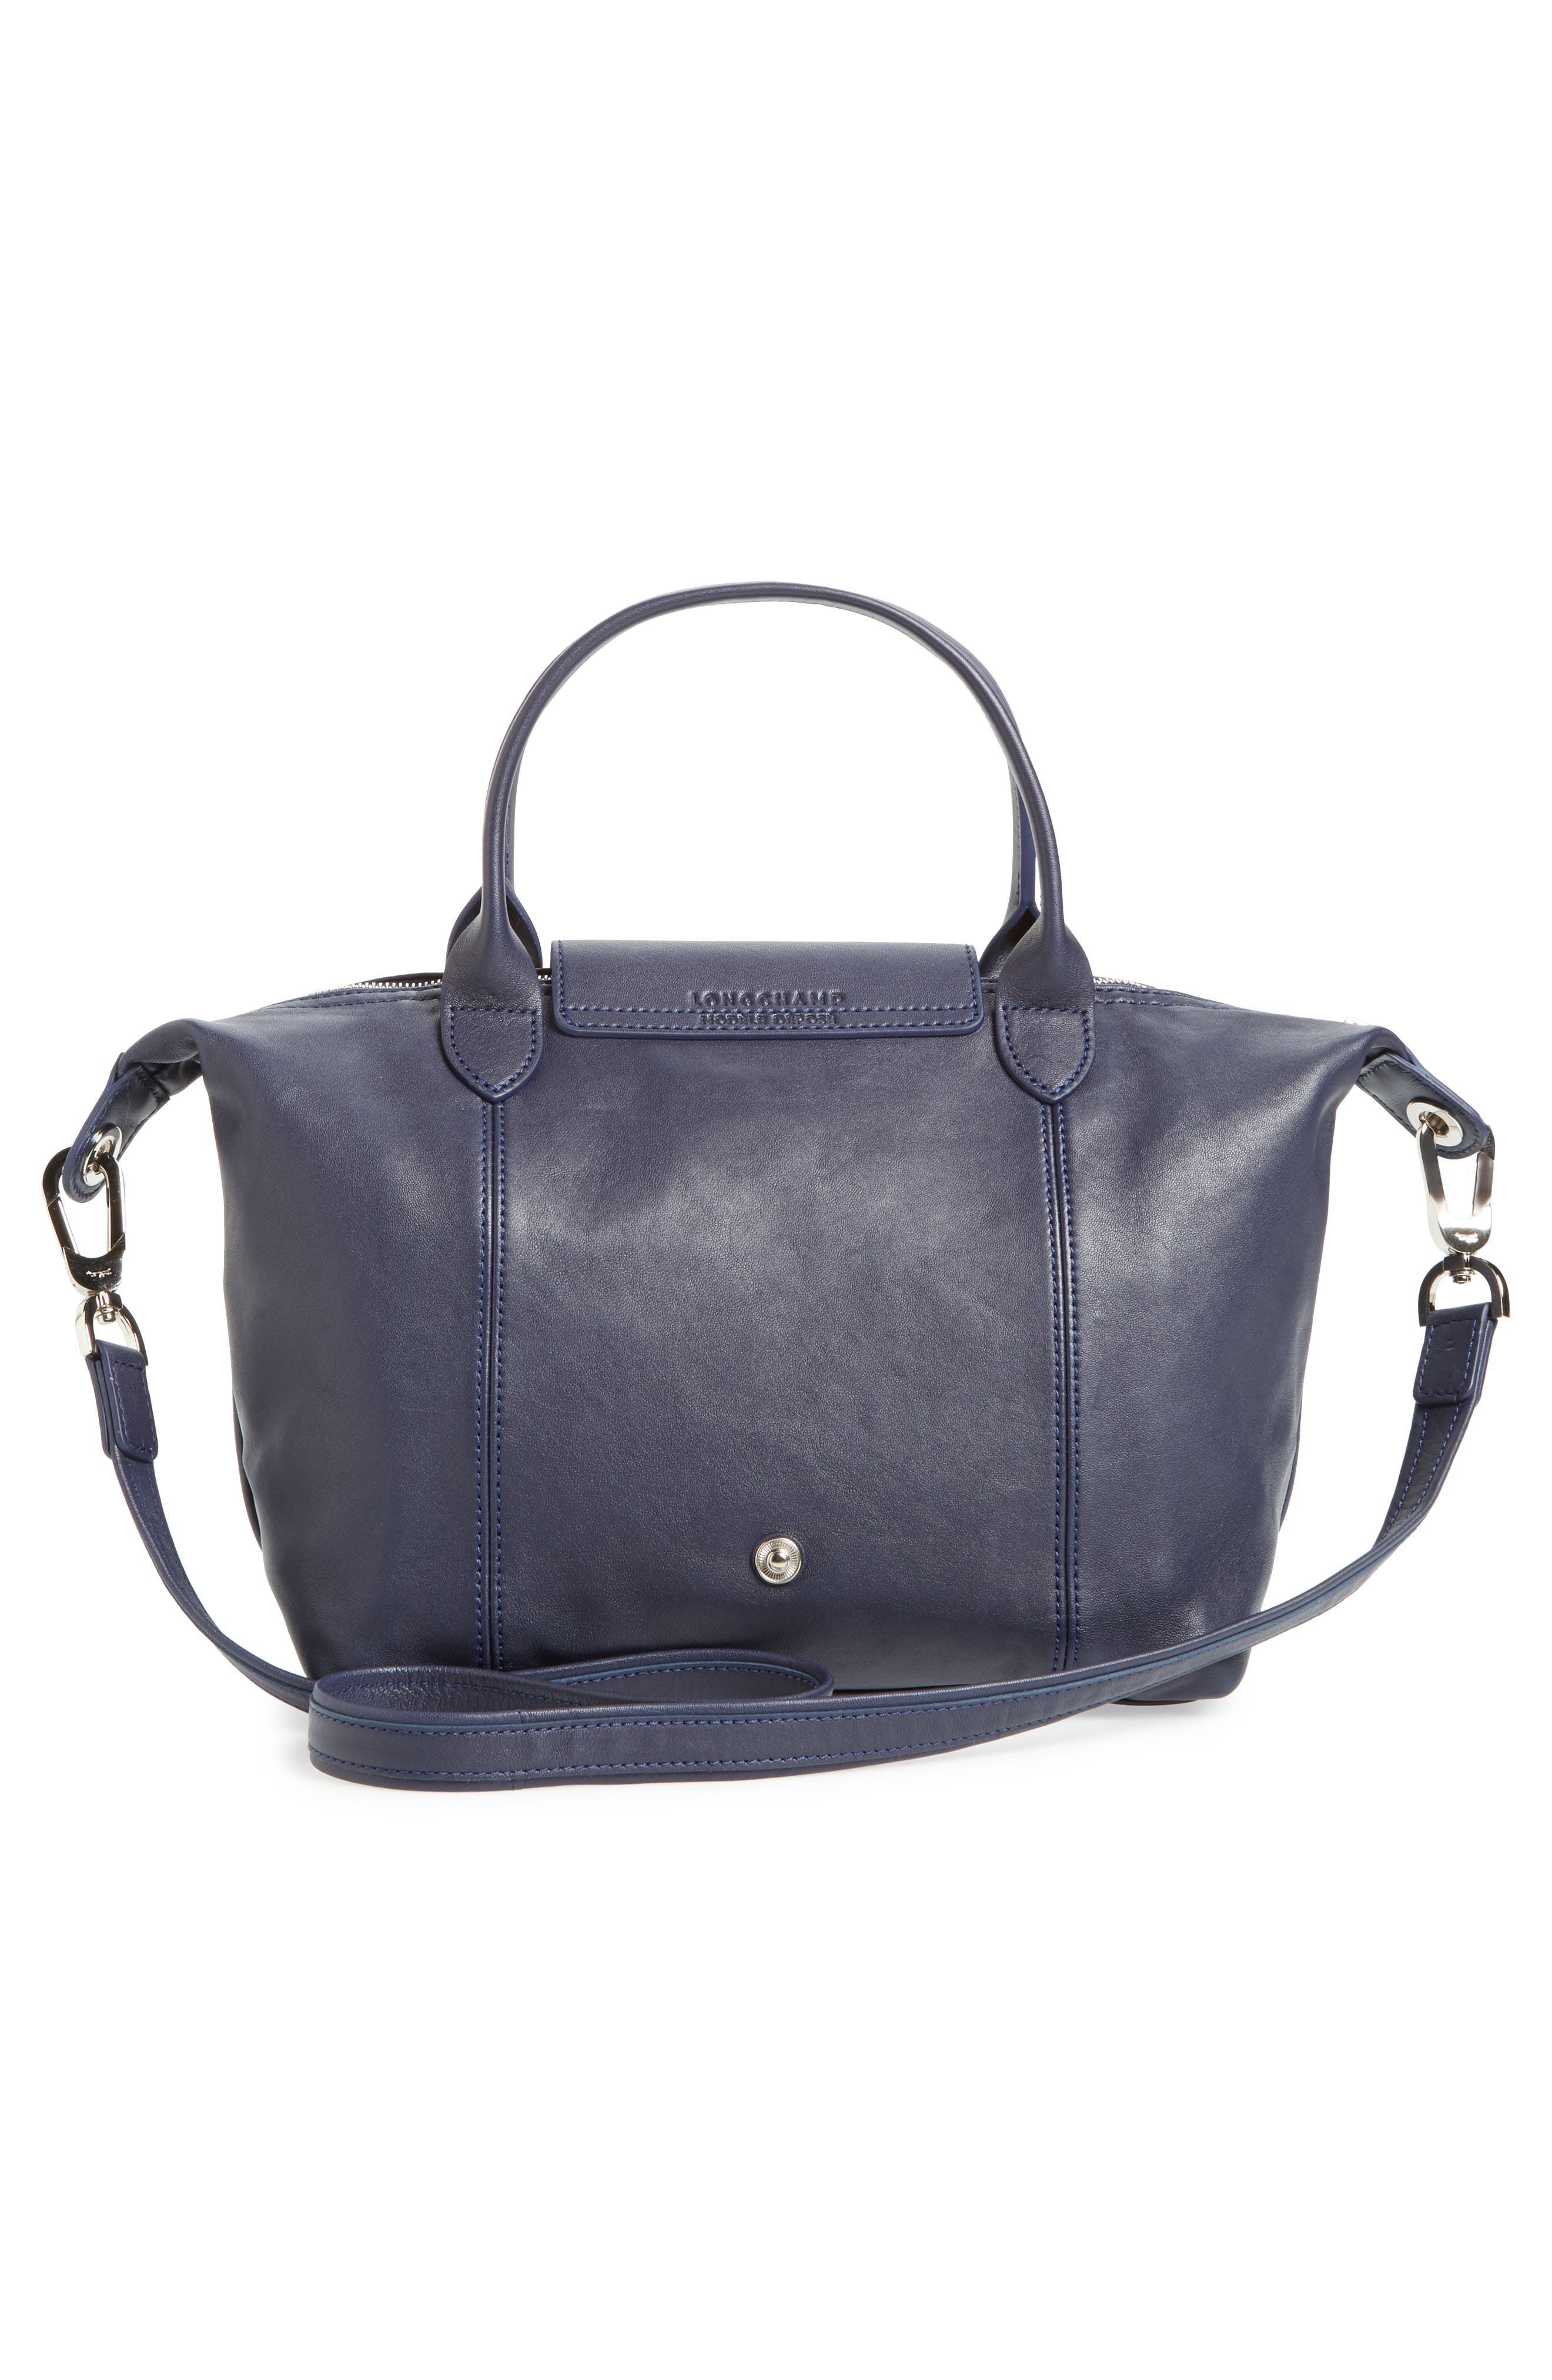 Small 'Le Pliage Cuir' Leather Top Handle Tote,                             Alternate thumbnail 51, color,